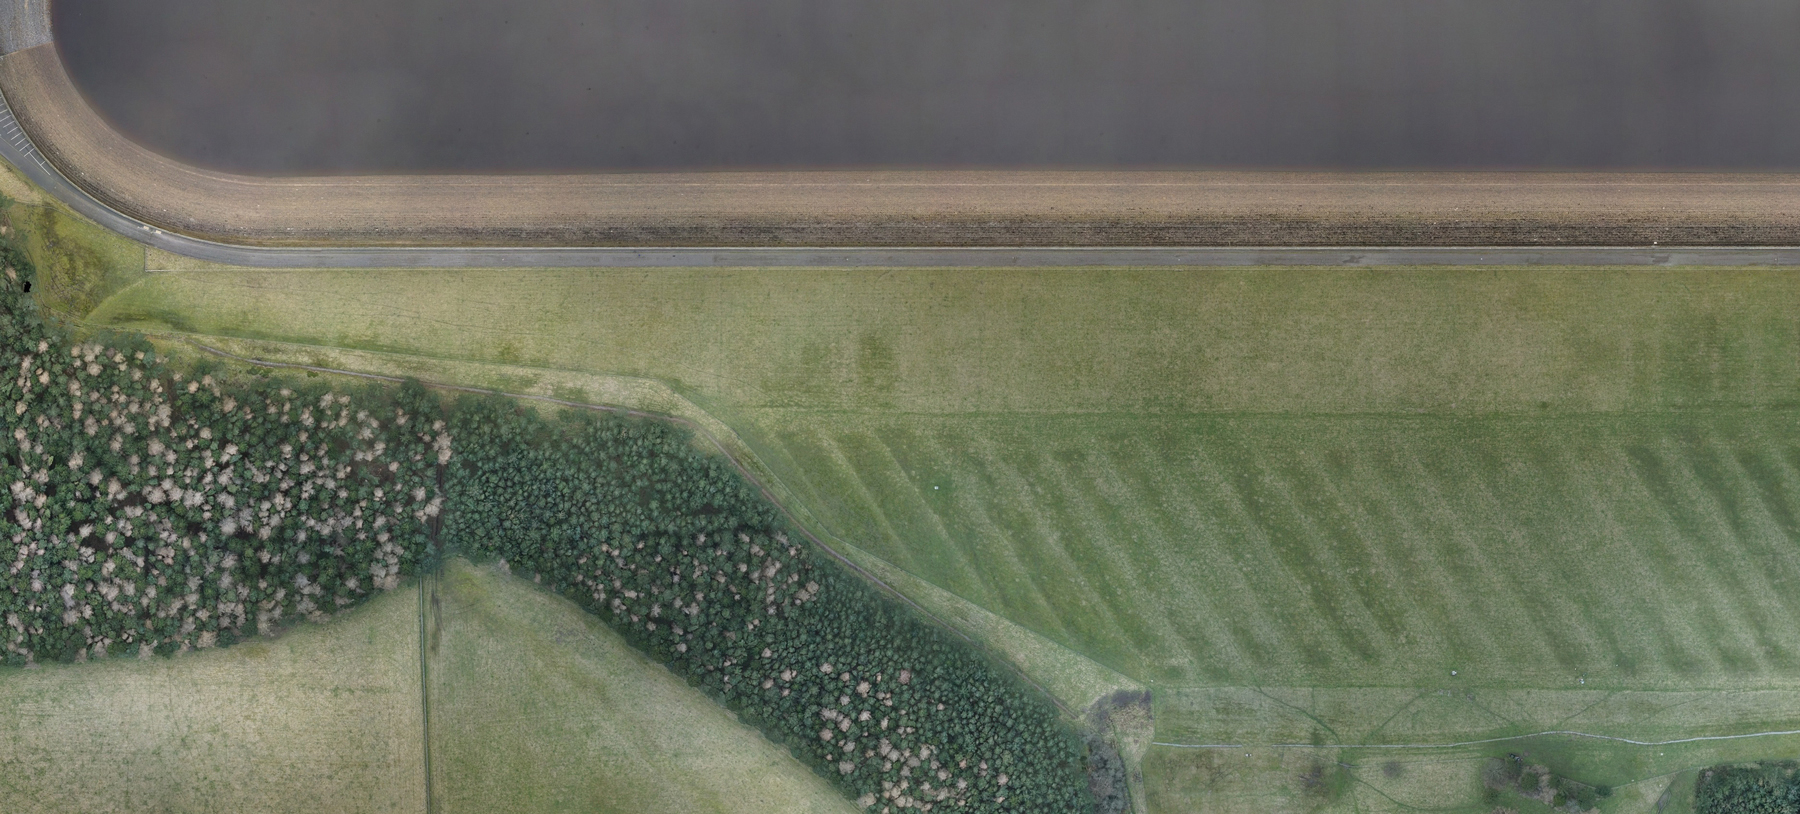 Lidar Reveals Lost Roman Road